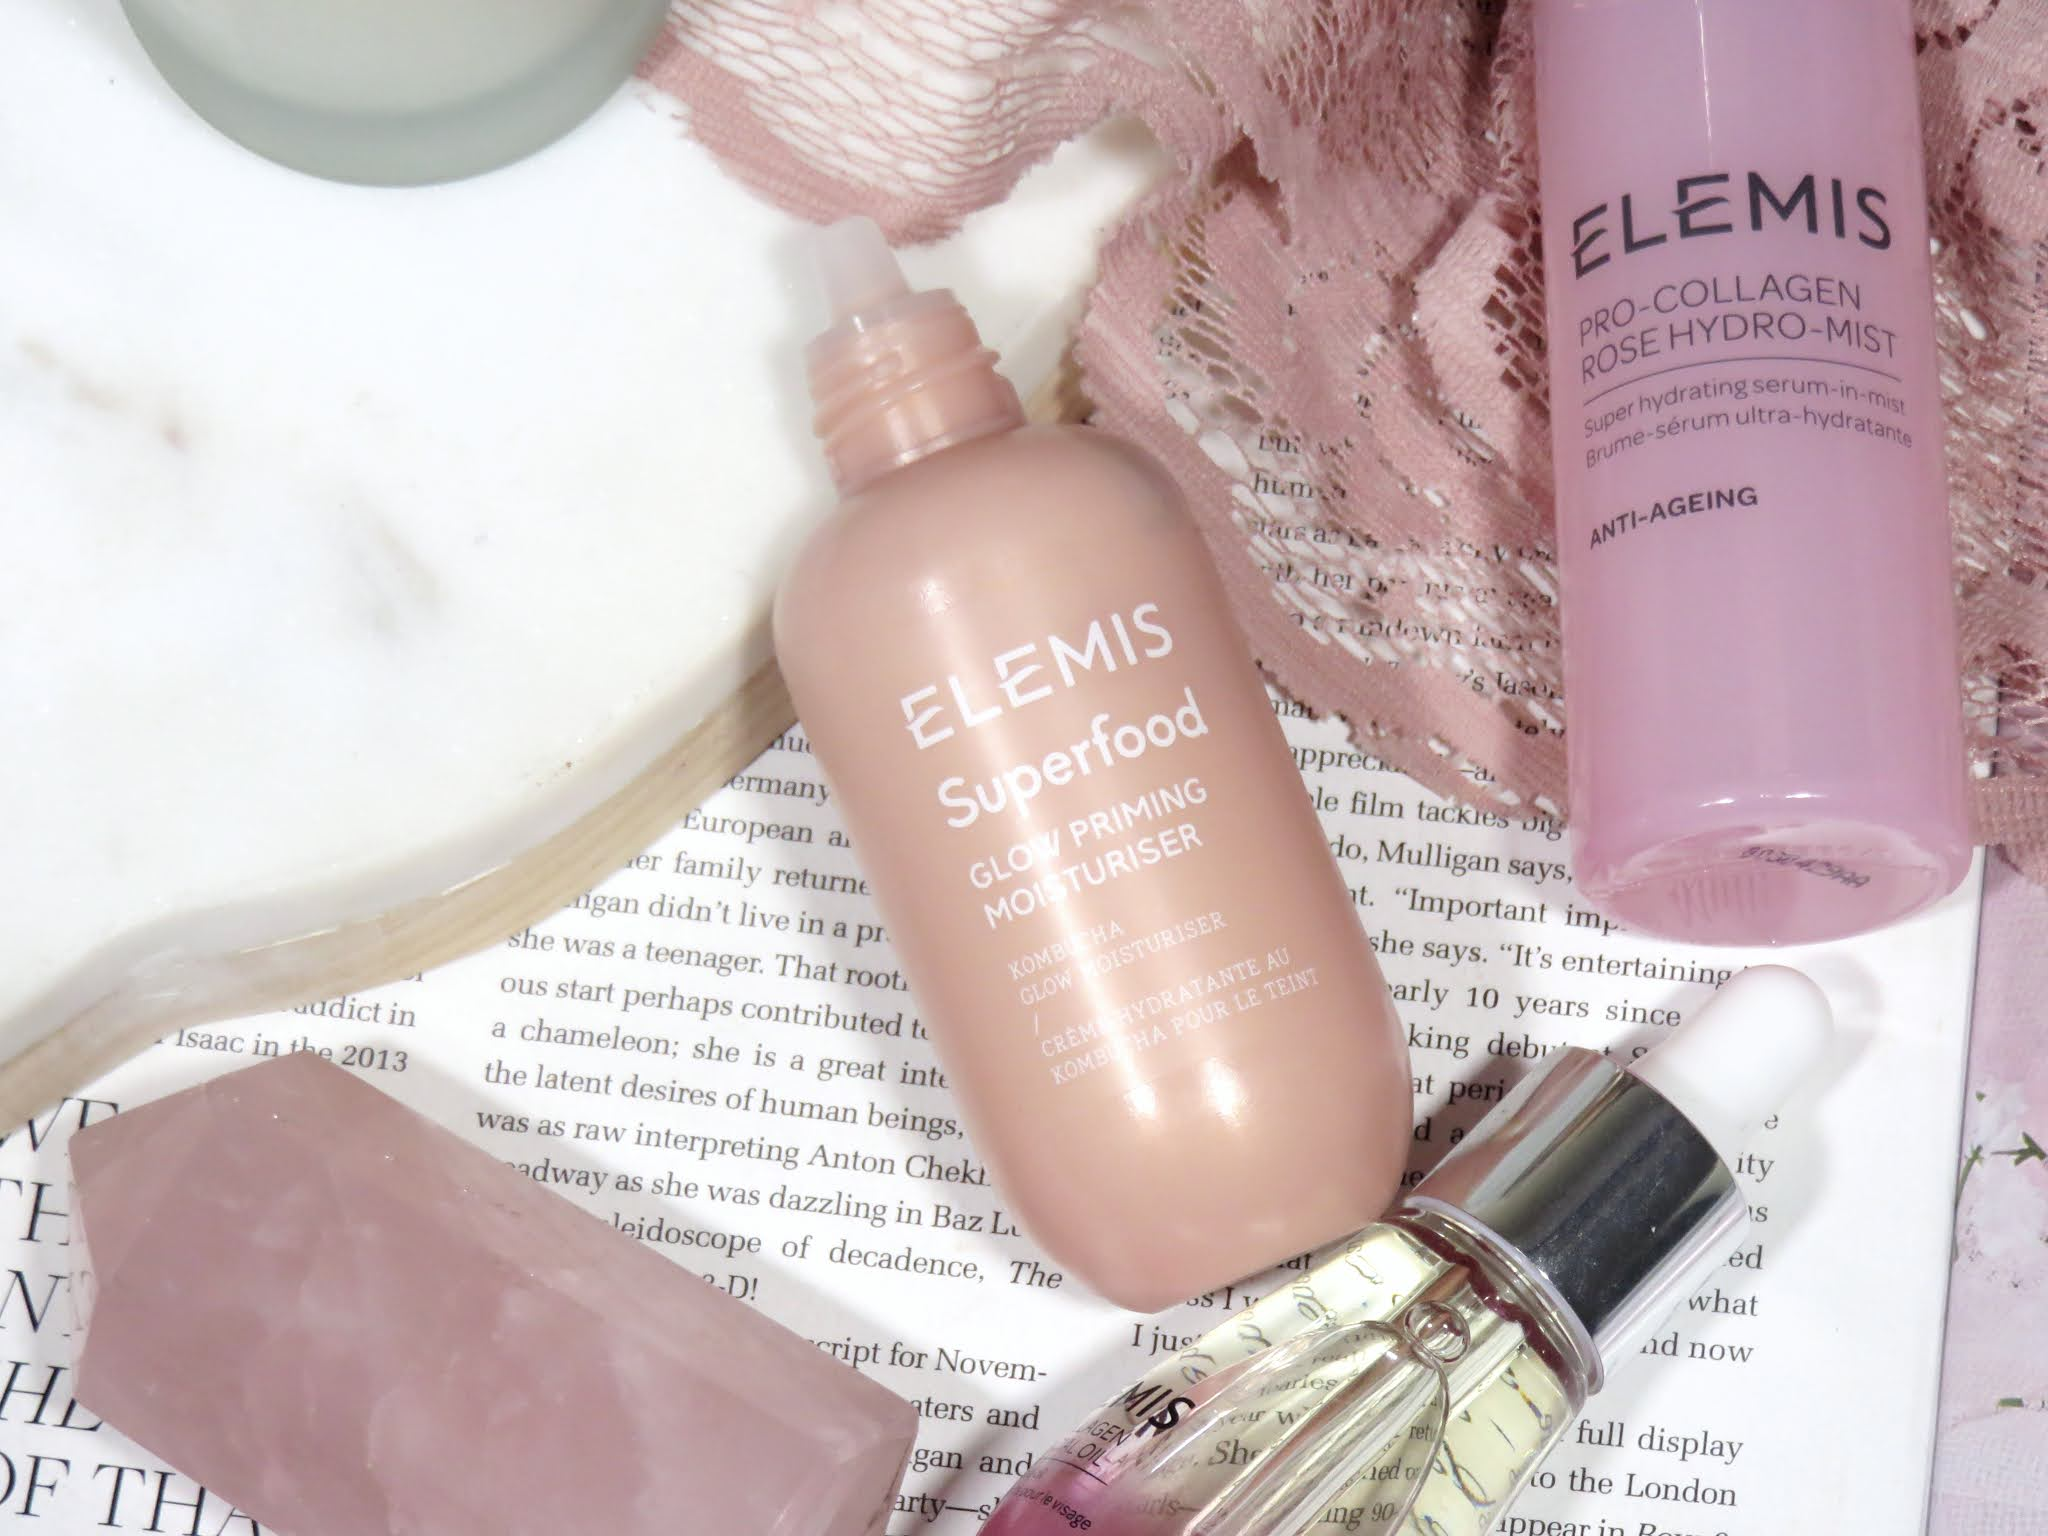 Elemis Superfood Glow Priming Moisturizer Review and Swatches